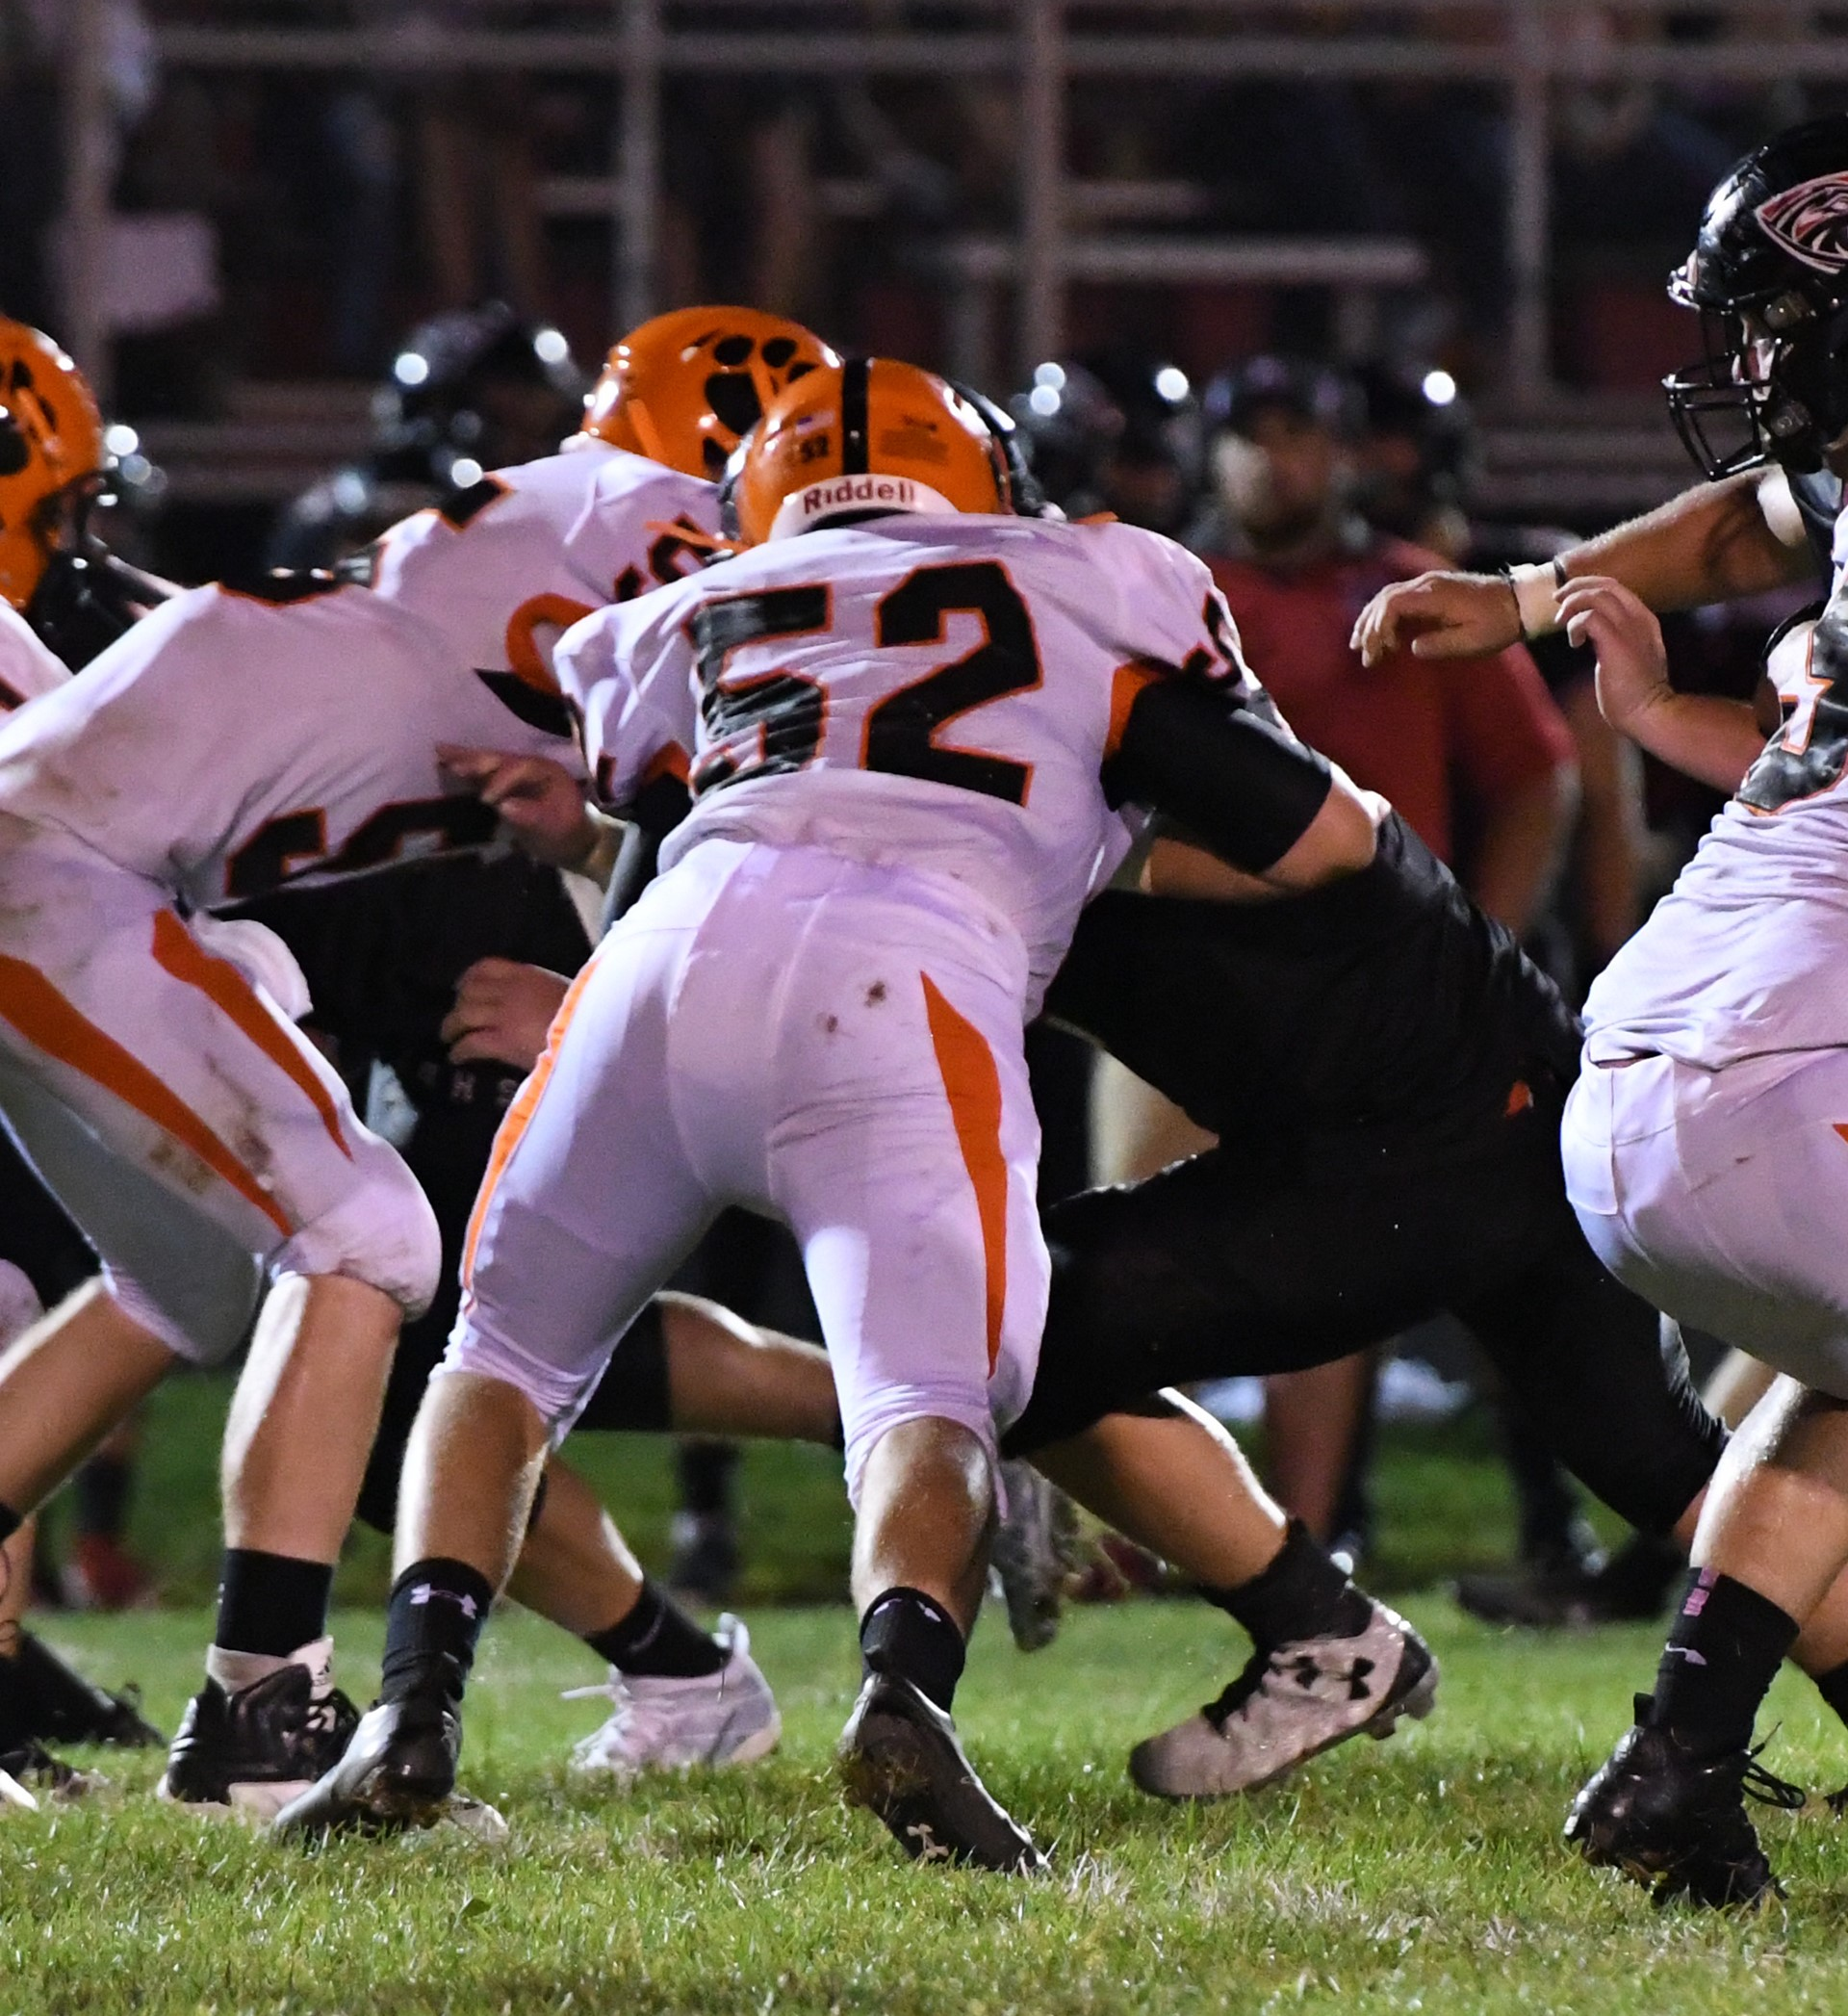 CHASE SHEPPARD VS FAIRFIELD UNION